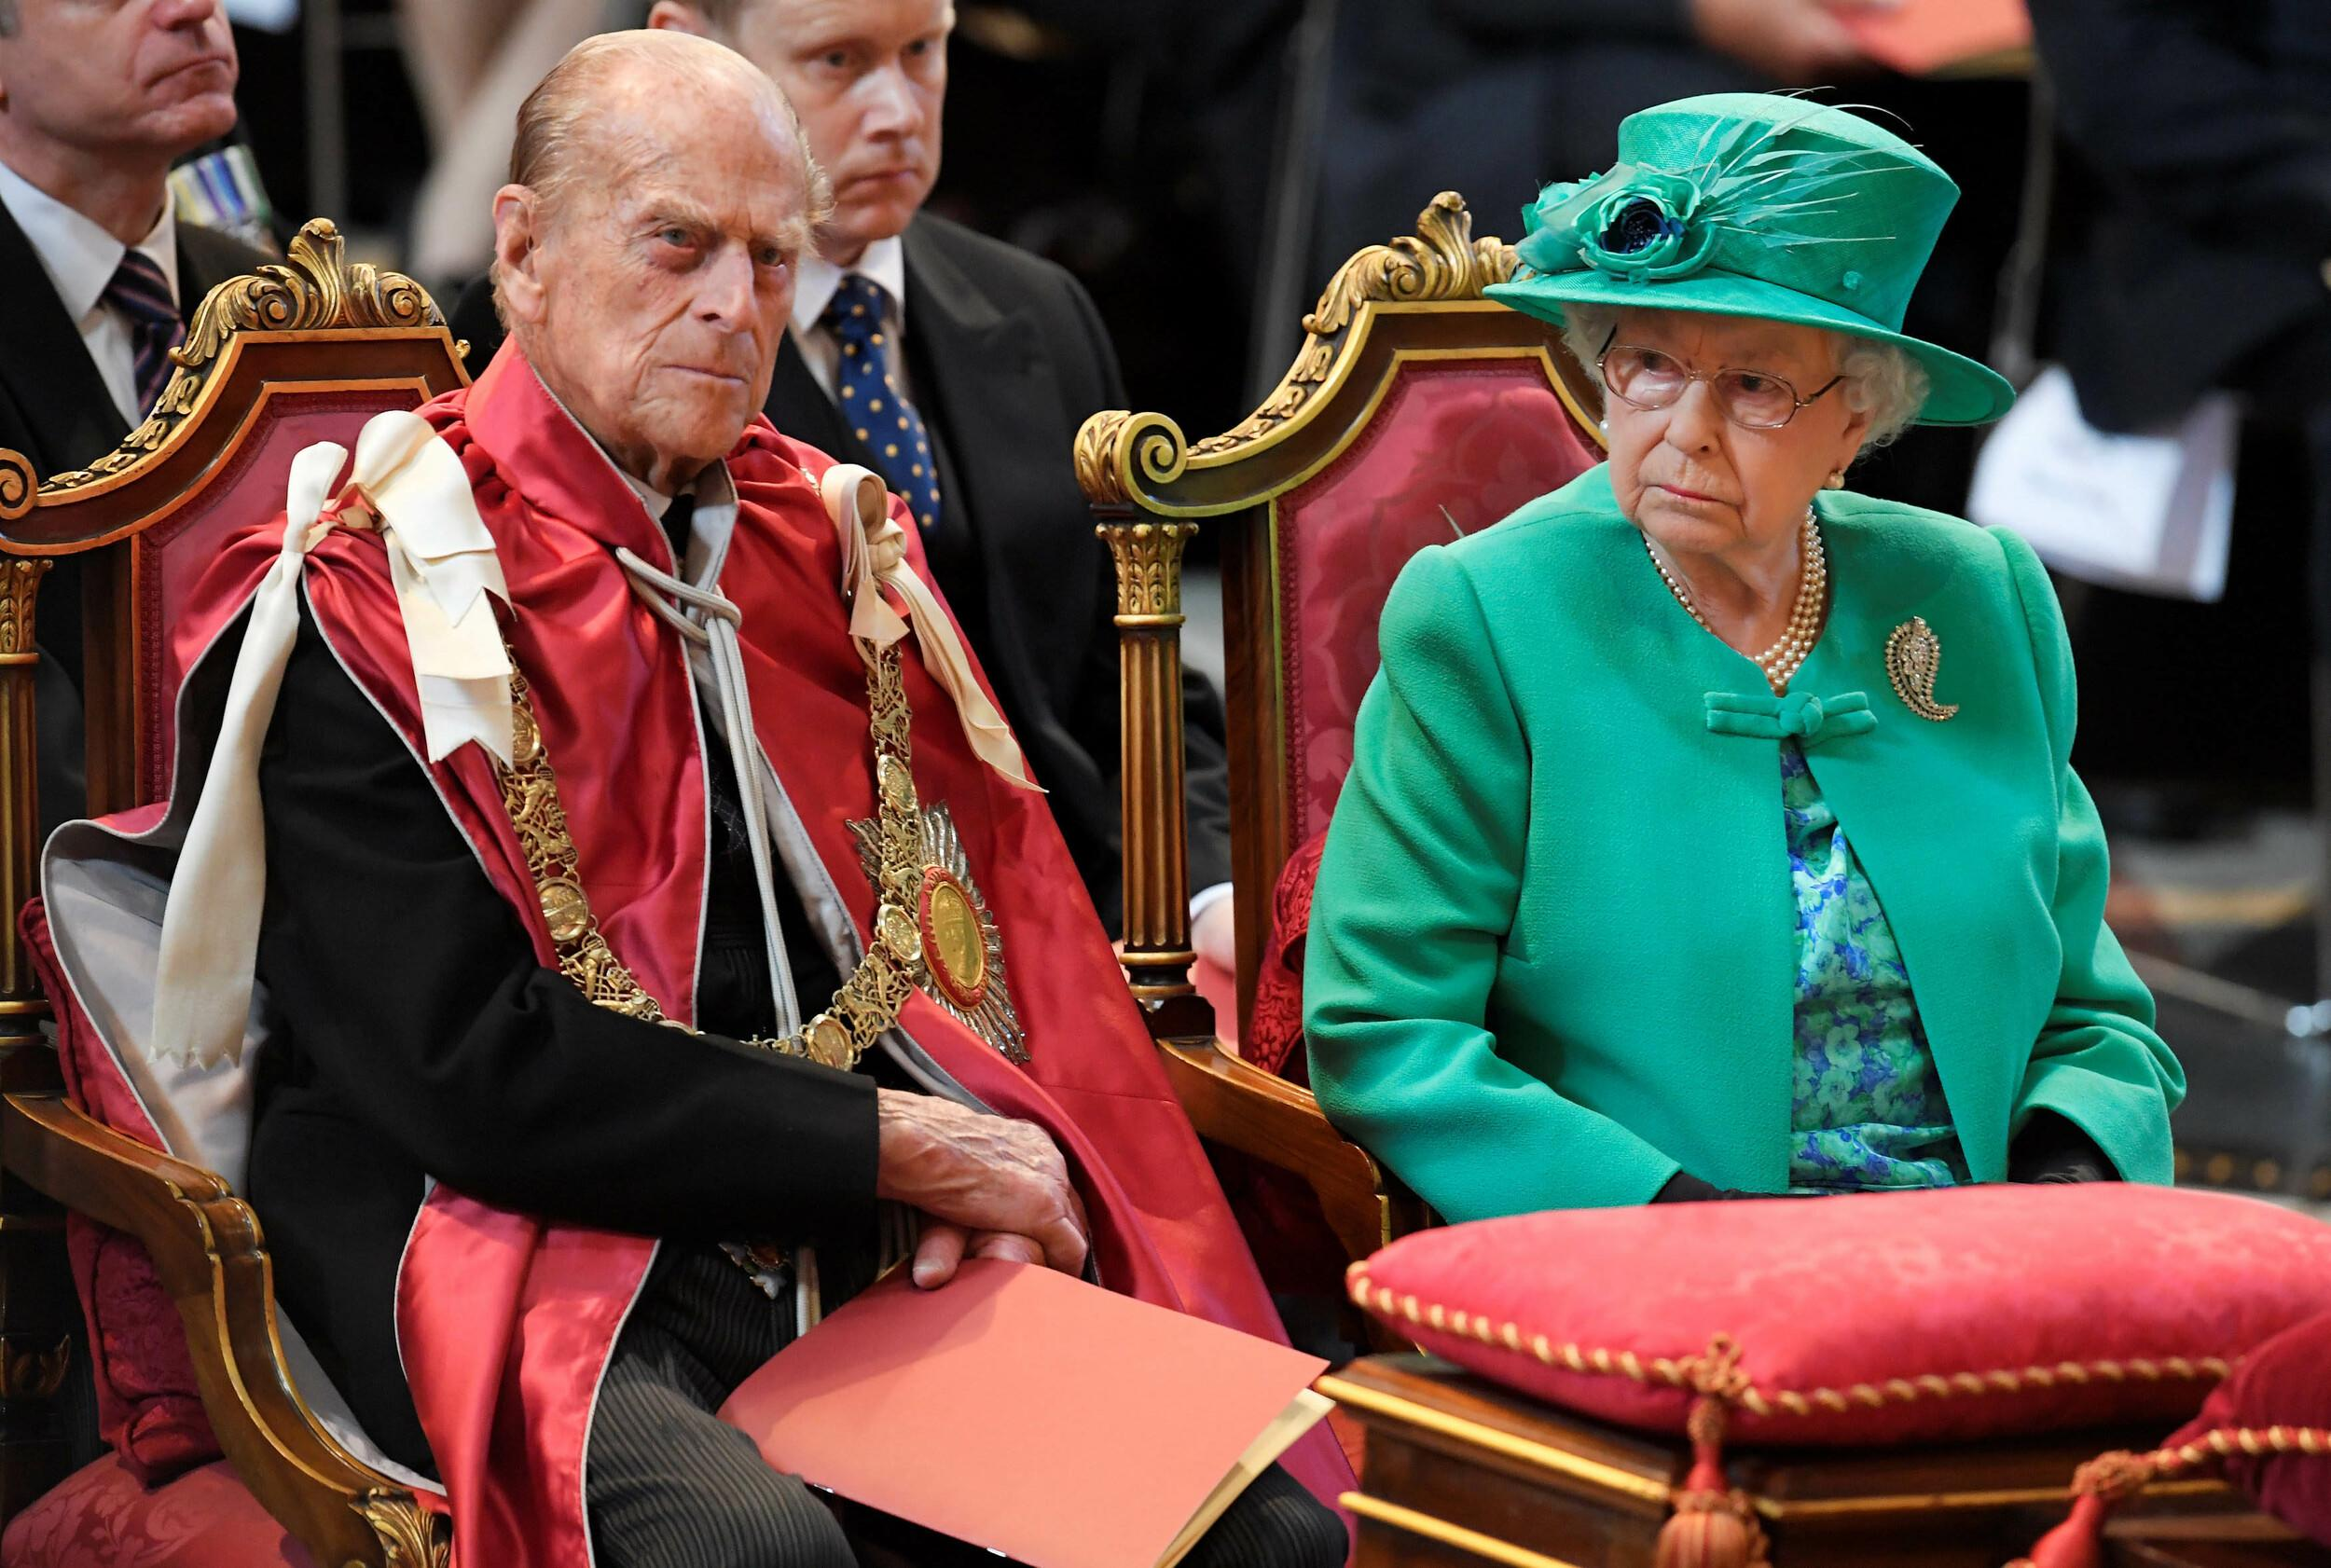 Photo by: KGC-375/STAR MAX/IPx 2017 5/24/17 Queen Elizabeth II and Prince Philip, Duke of Edinburgh attend a service to mark the 100th anniversary of the Order of the British Empire at St Paul's Cathedral in London.